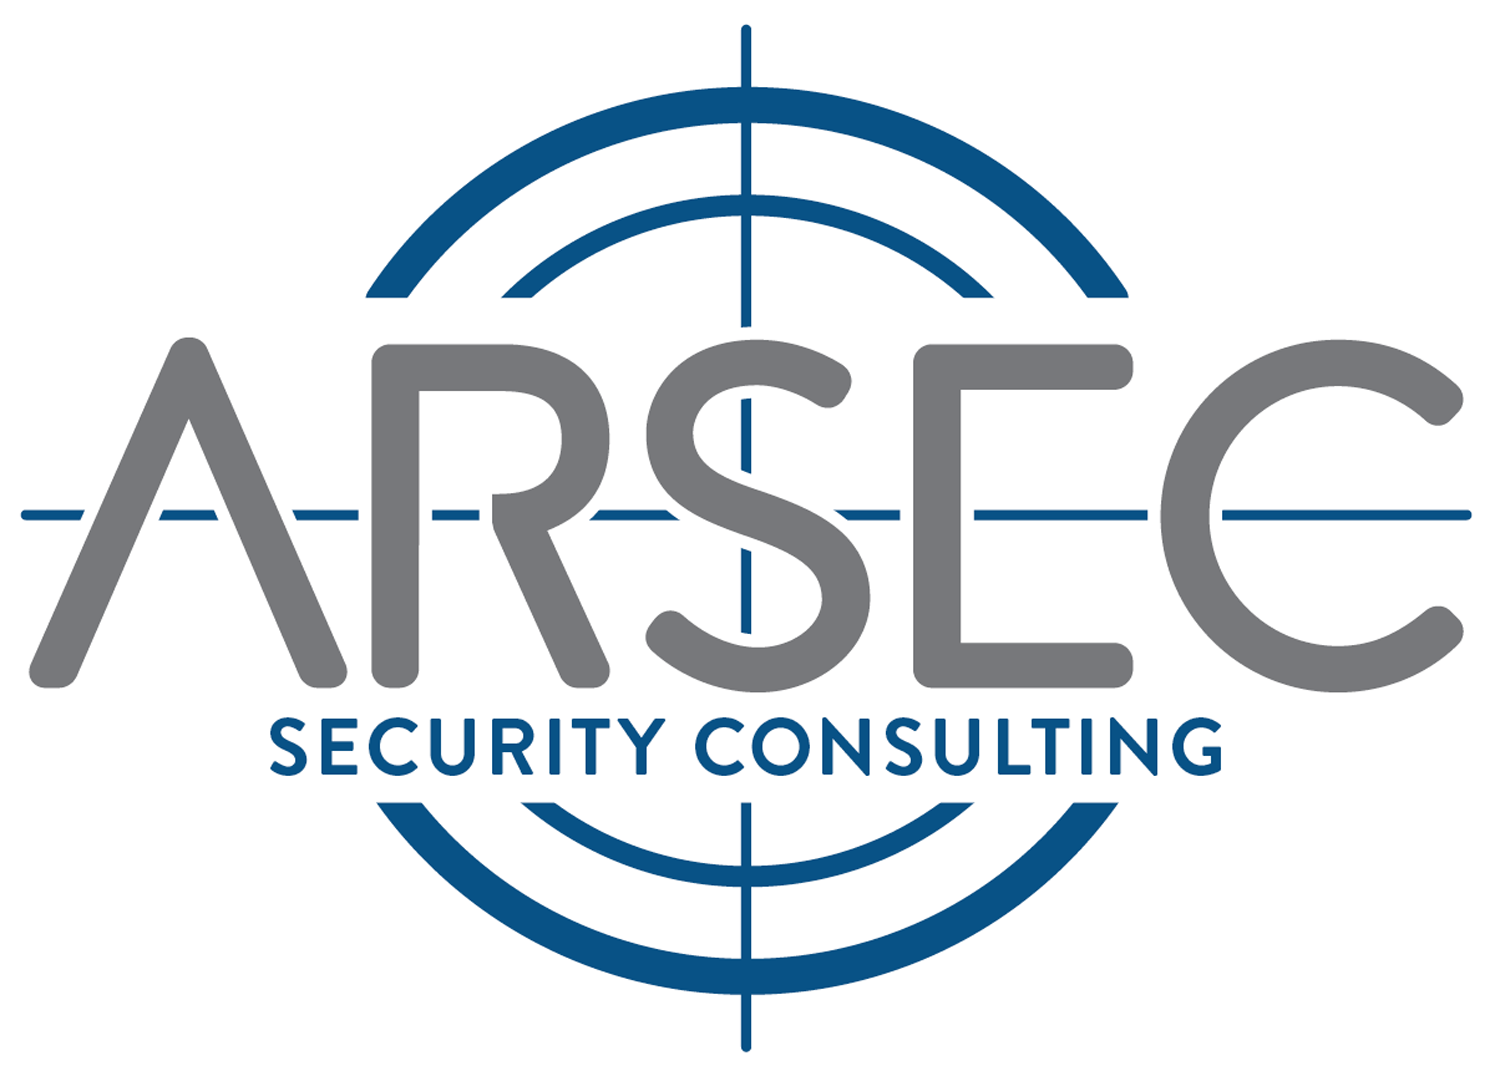 ARSEC Security Consulting